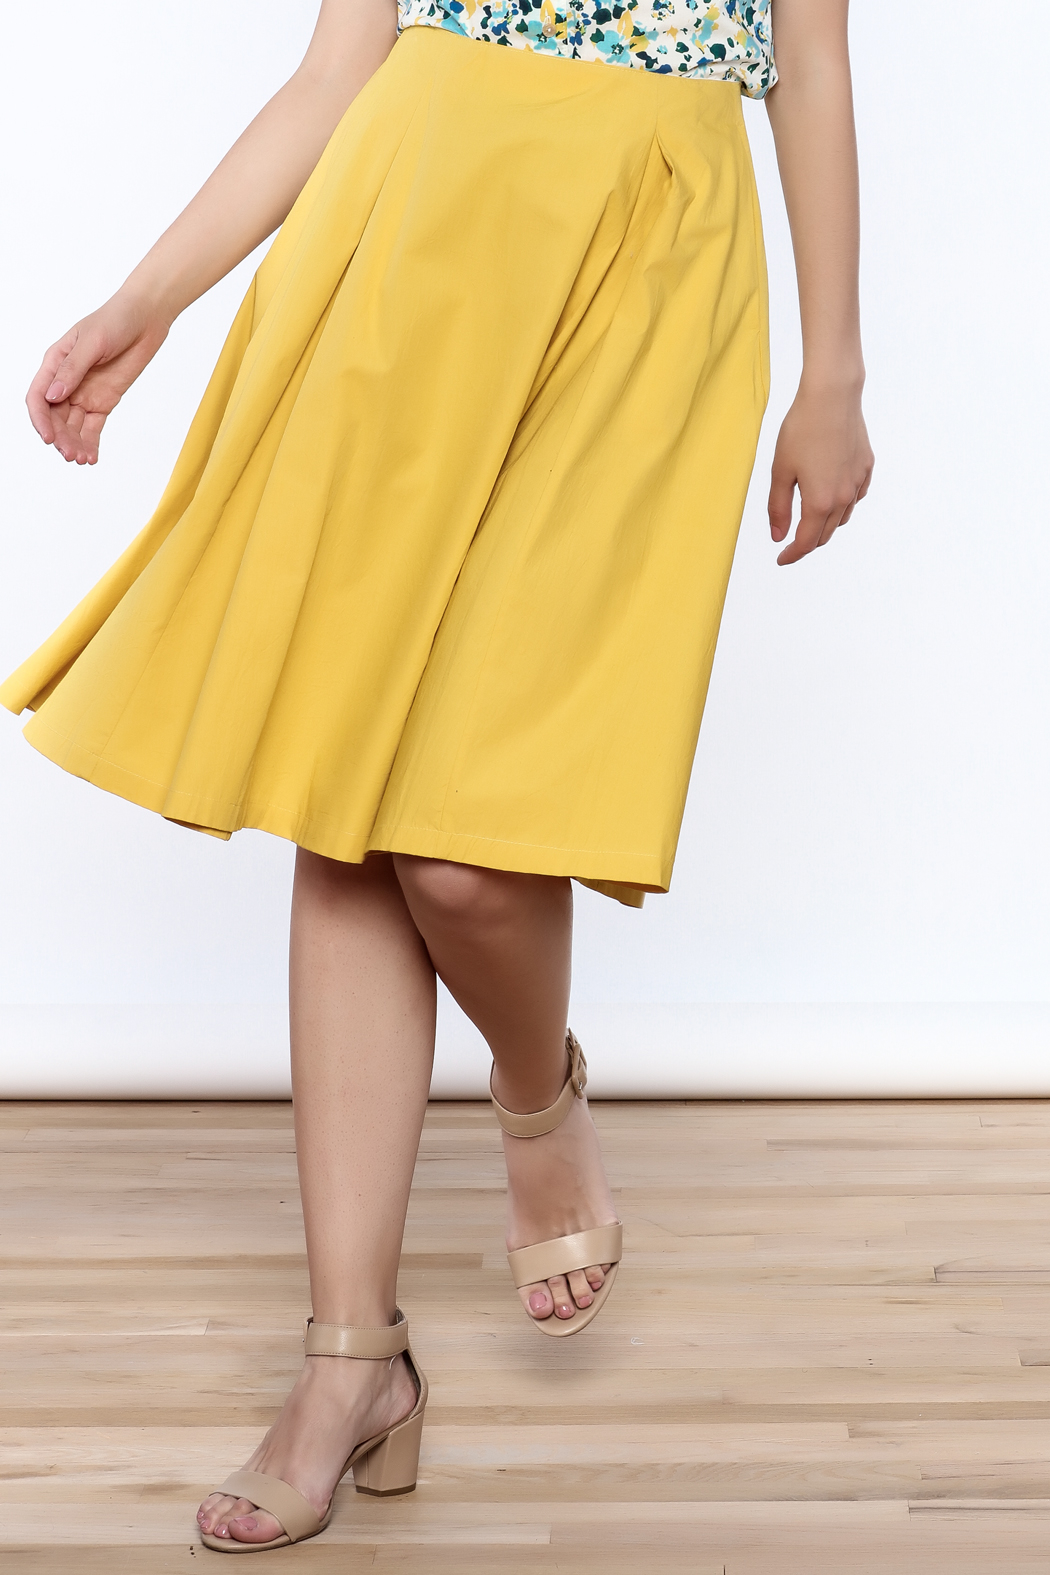 Archerie Valerie Pleated Skirt - Main Image